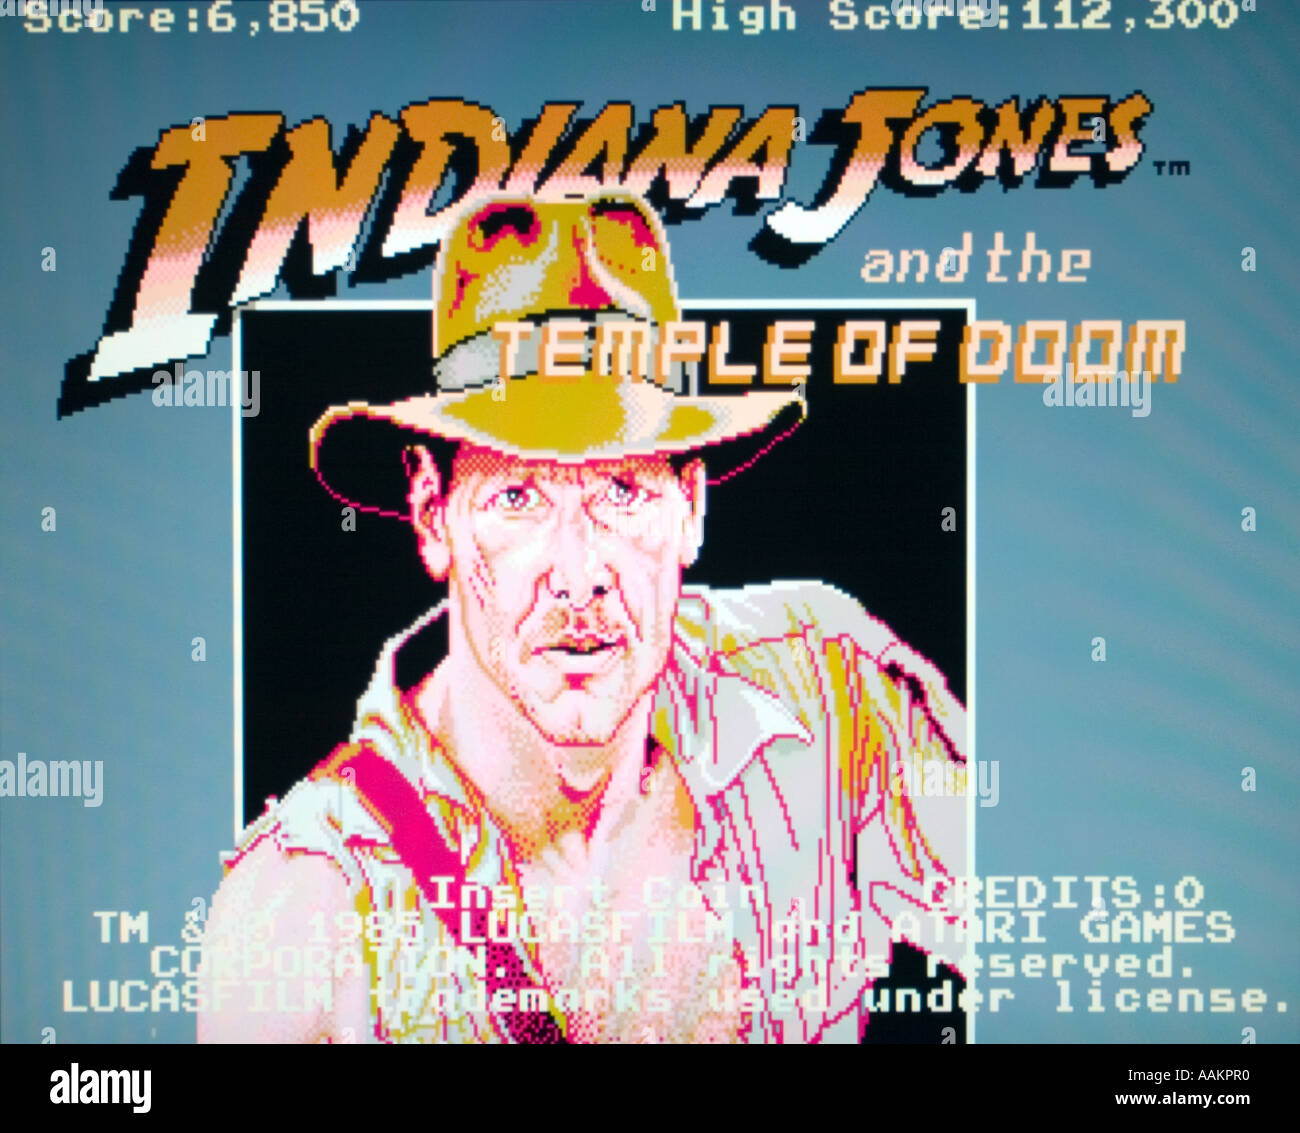 Indiana Jones and the Temple of Doom Lucasfilm Atari Games 1985 vintage  arcade videogame screenshot - 92beeab1b6a2